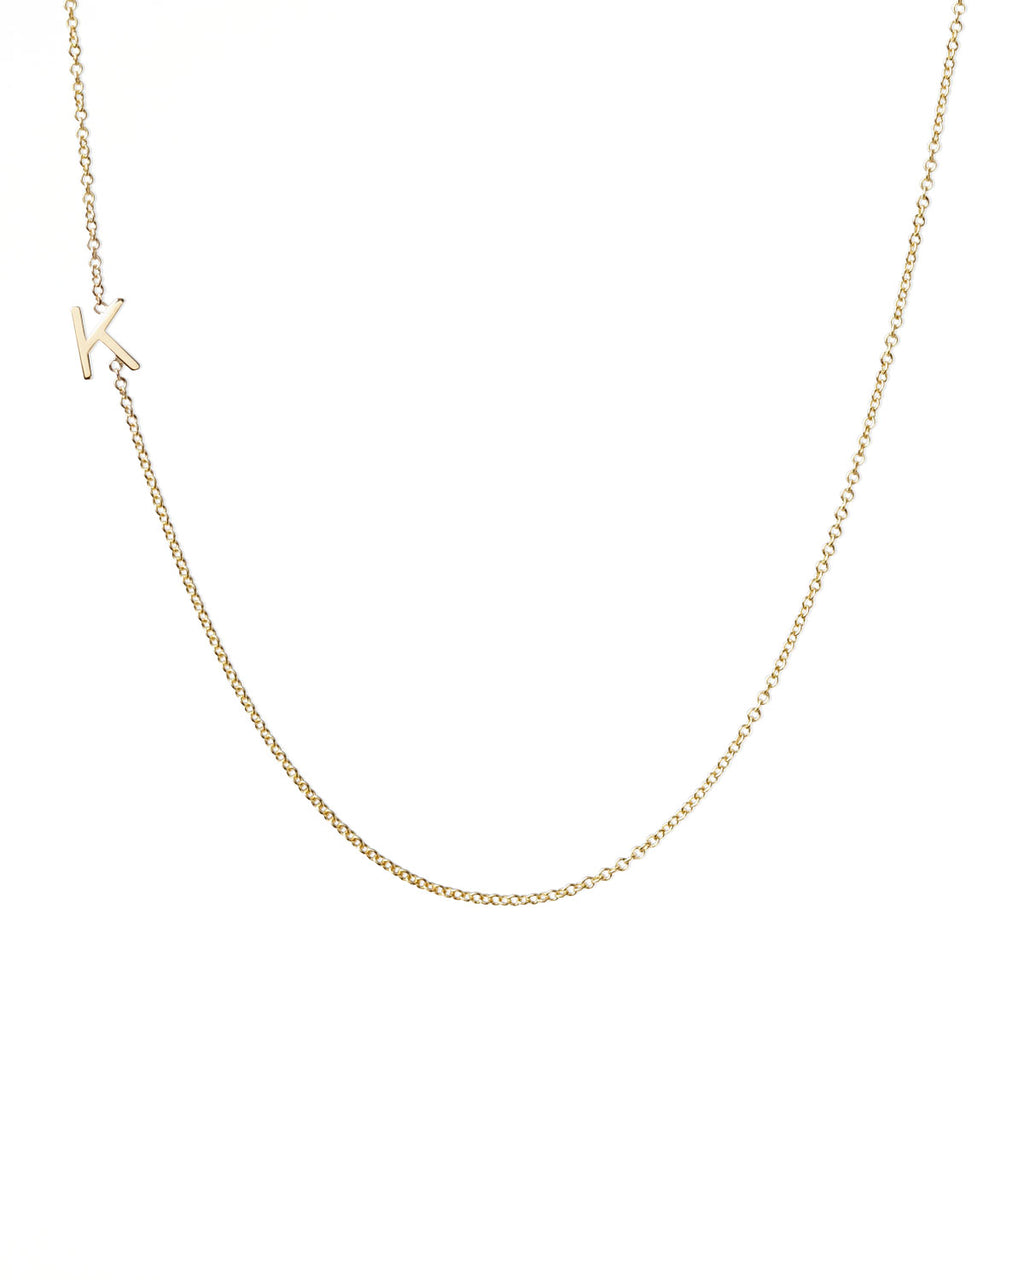 14 K Gold Initial Letter Necklace